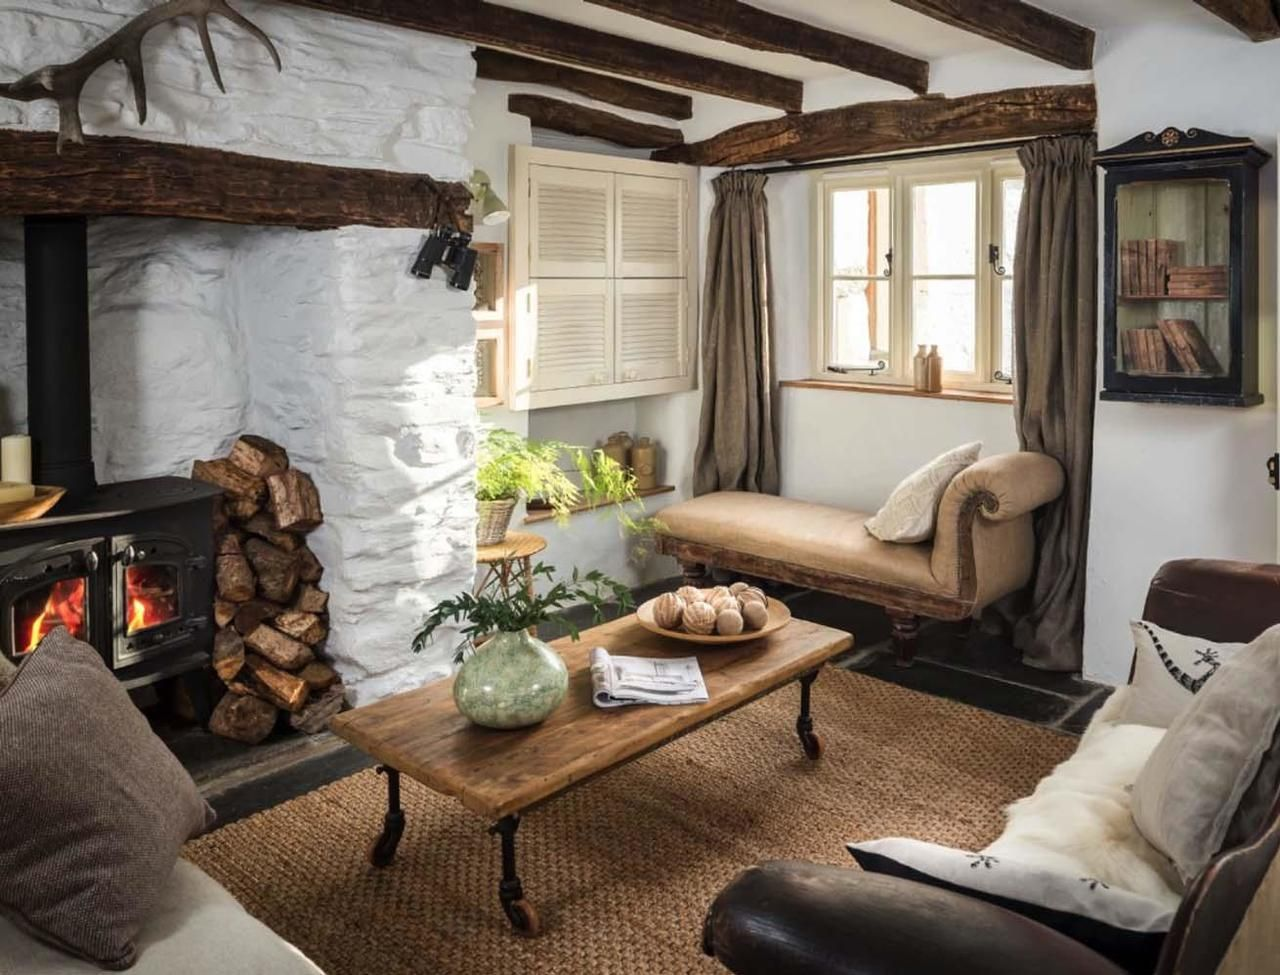 Best Of Interior Design And Architecture Ideas English Cottage Decor Cottage Living Rooms English Cottage Interiors #small #cottage #living #room #ideas